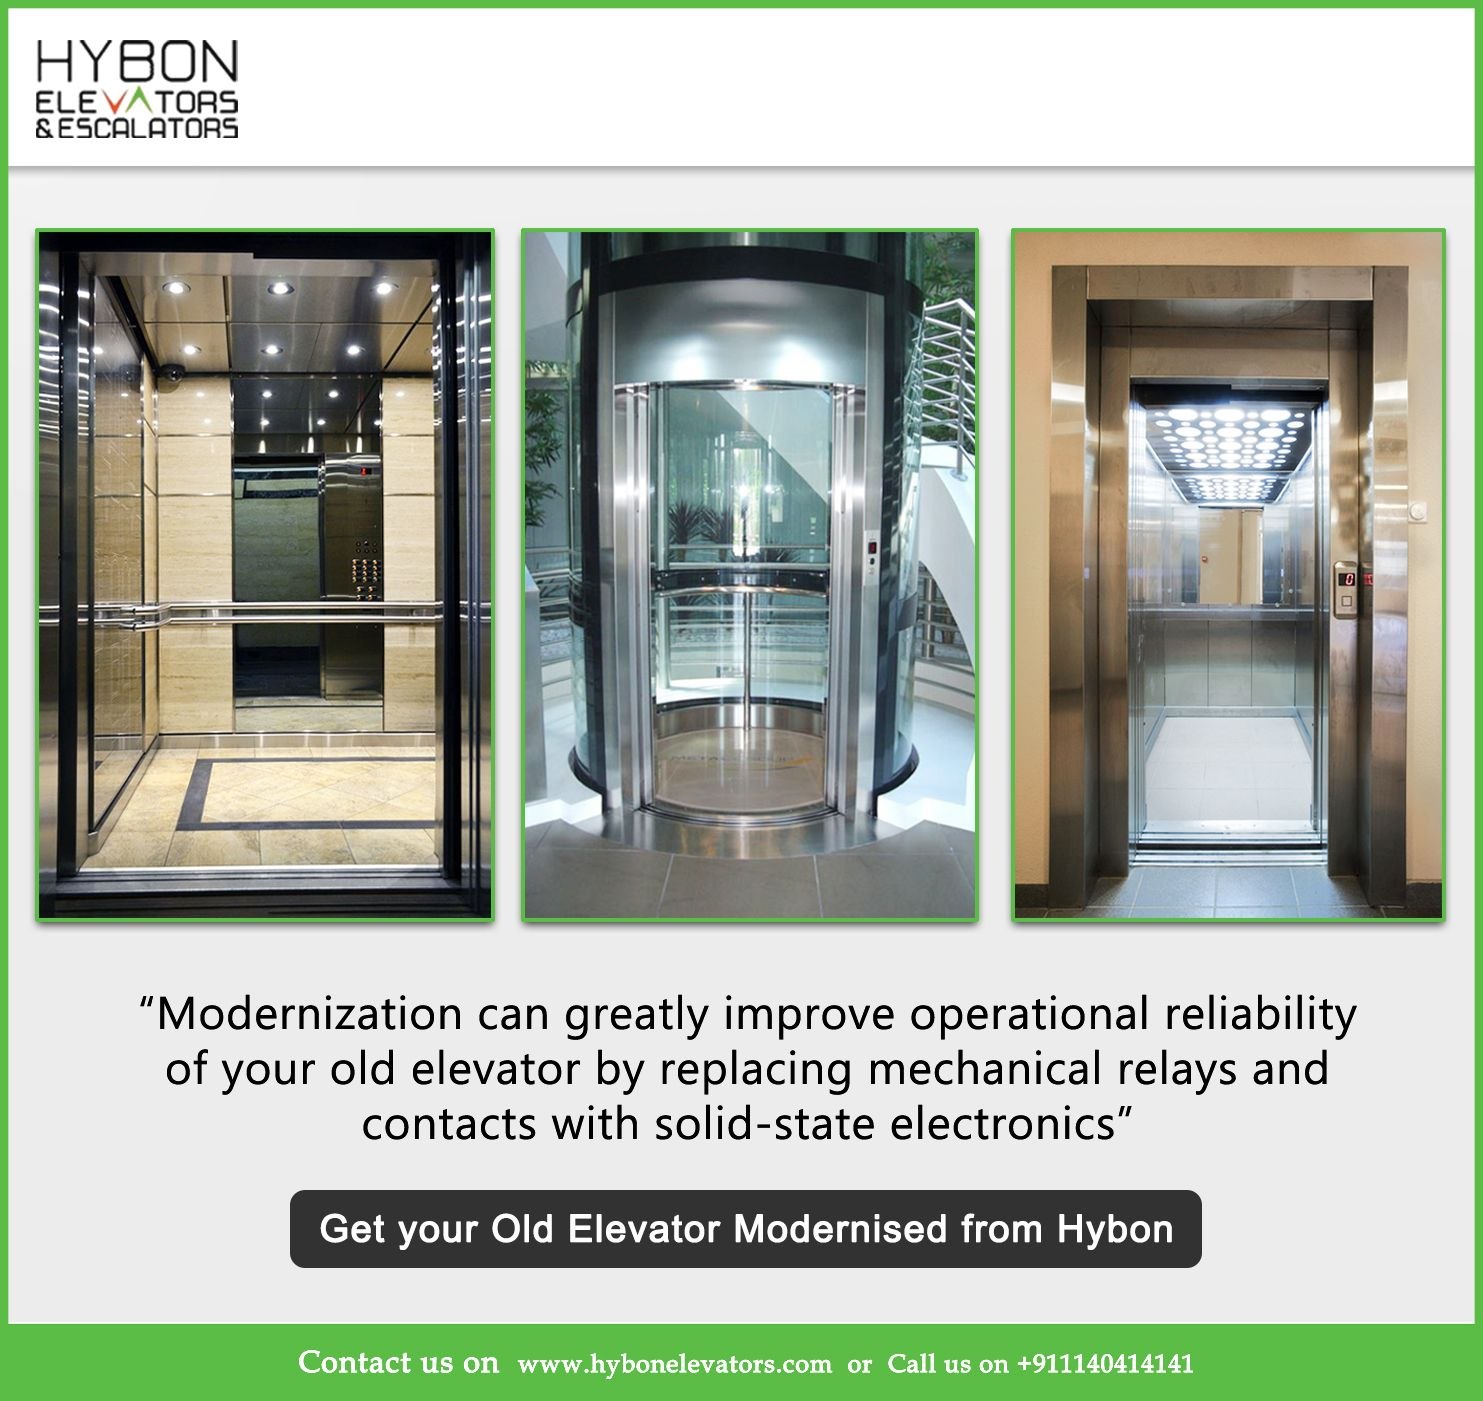 Hybon Elevators is well known for modernization of Elevators